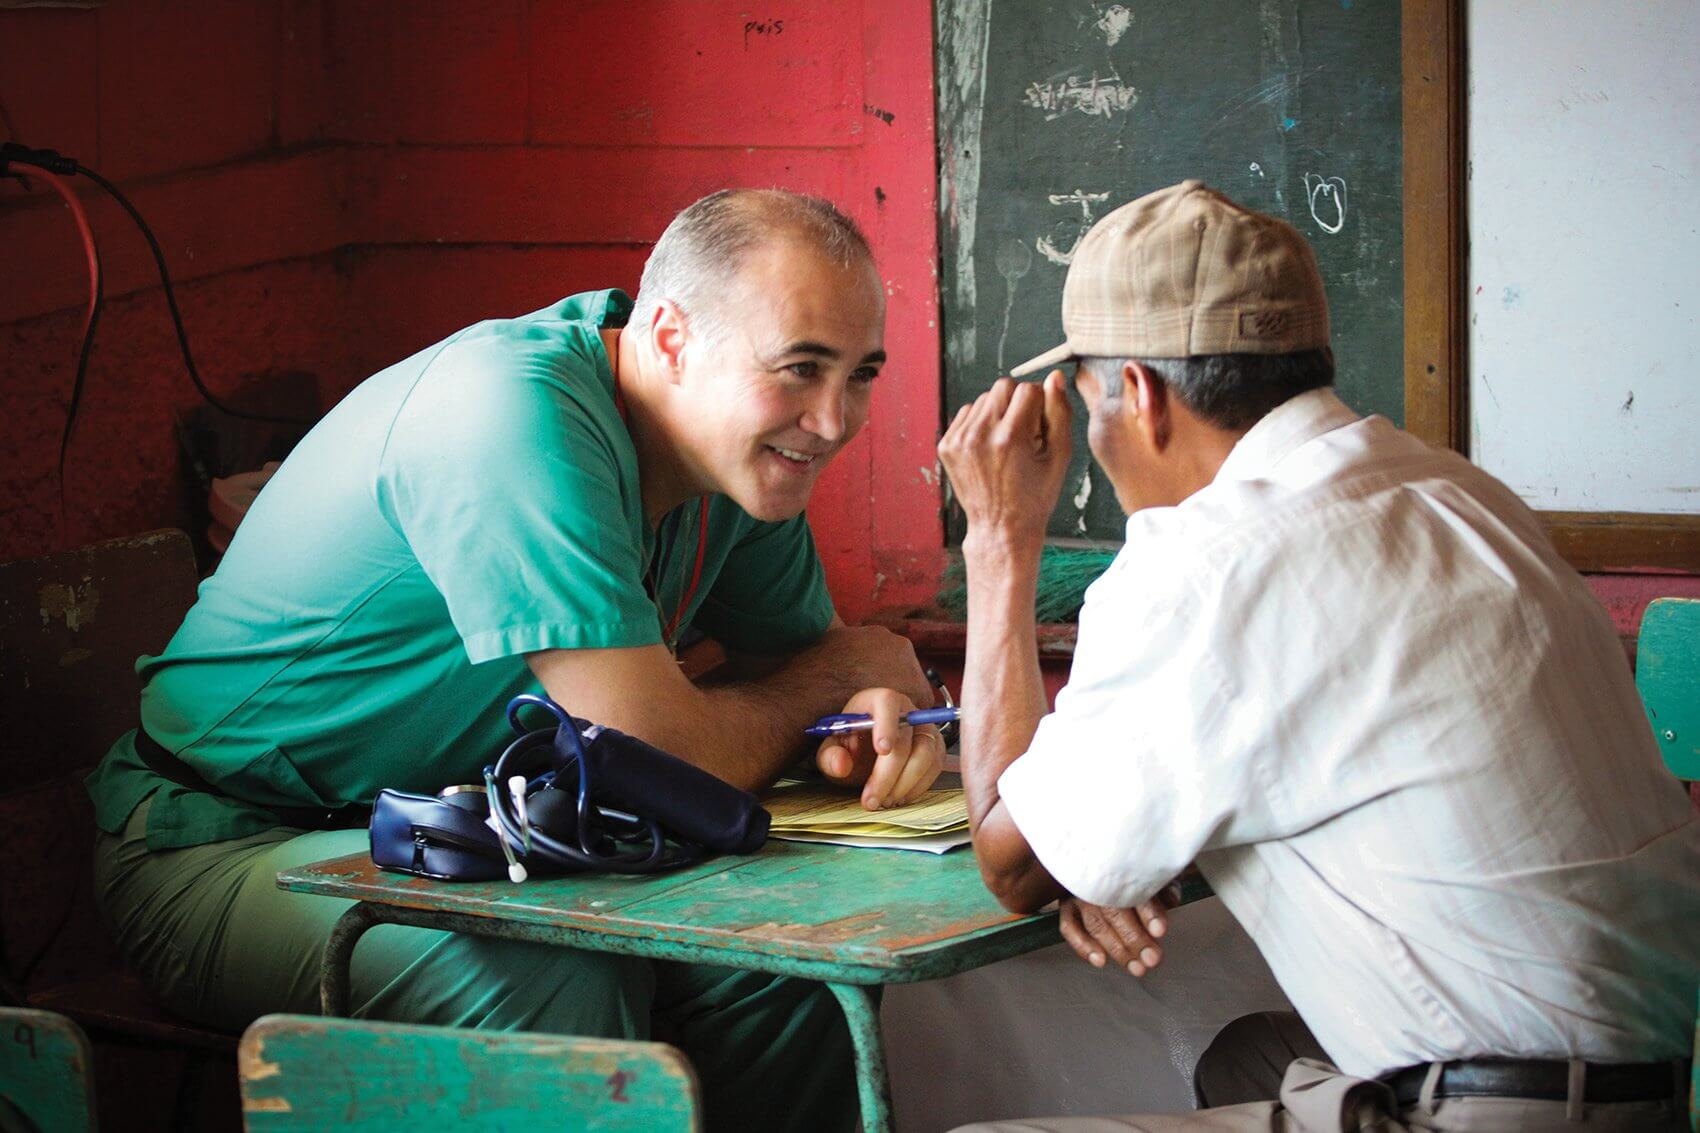 Stefano Sdringola, M.D., speaks with a patient in the clinic. (Credit: Josie Johnson)